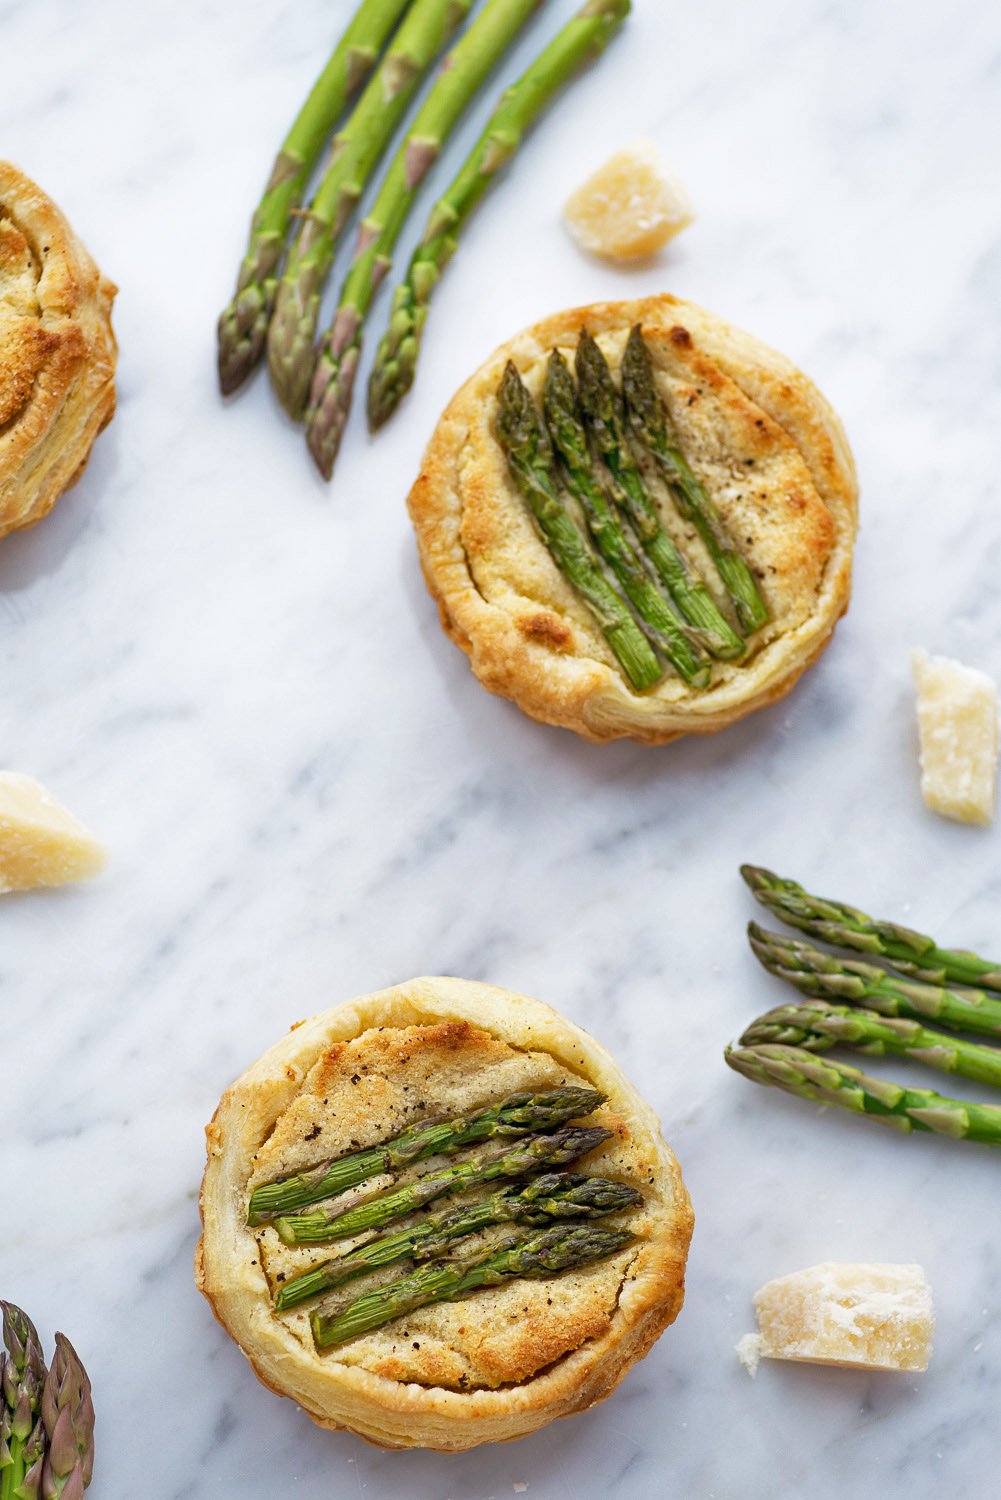 A Delicious Vegetarian Recipe Idea: Puff Pastry Tarts with Asparagus, Almond and Grana Padano Cheese